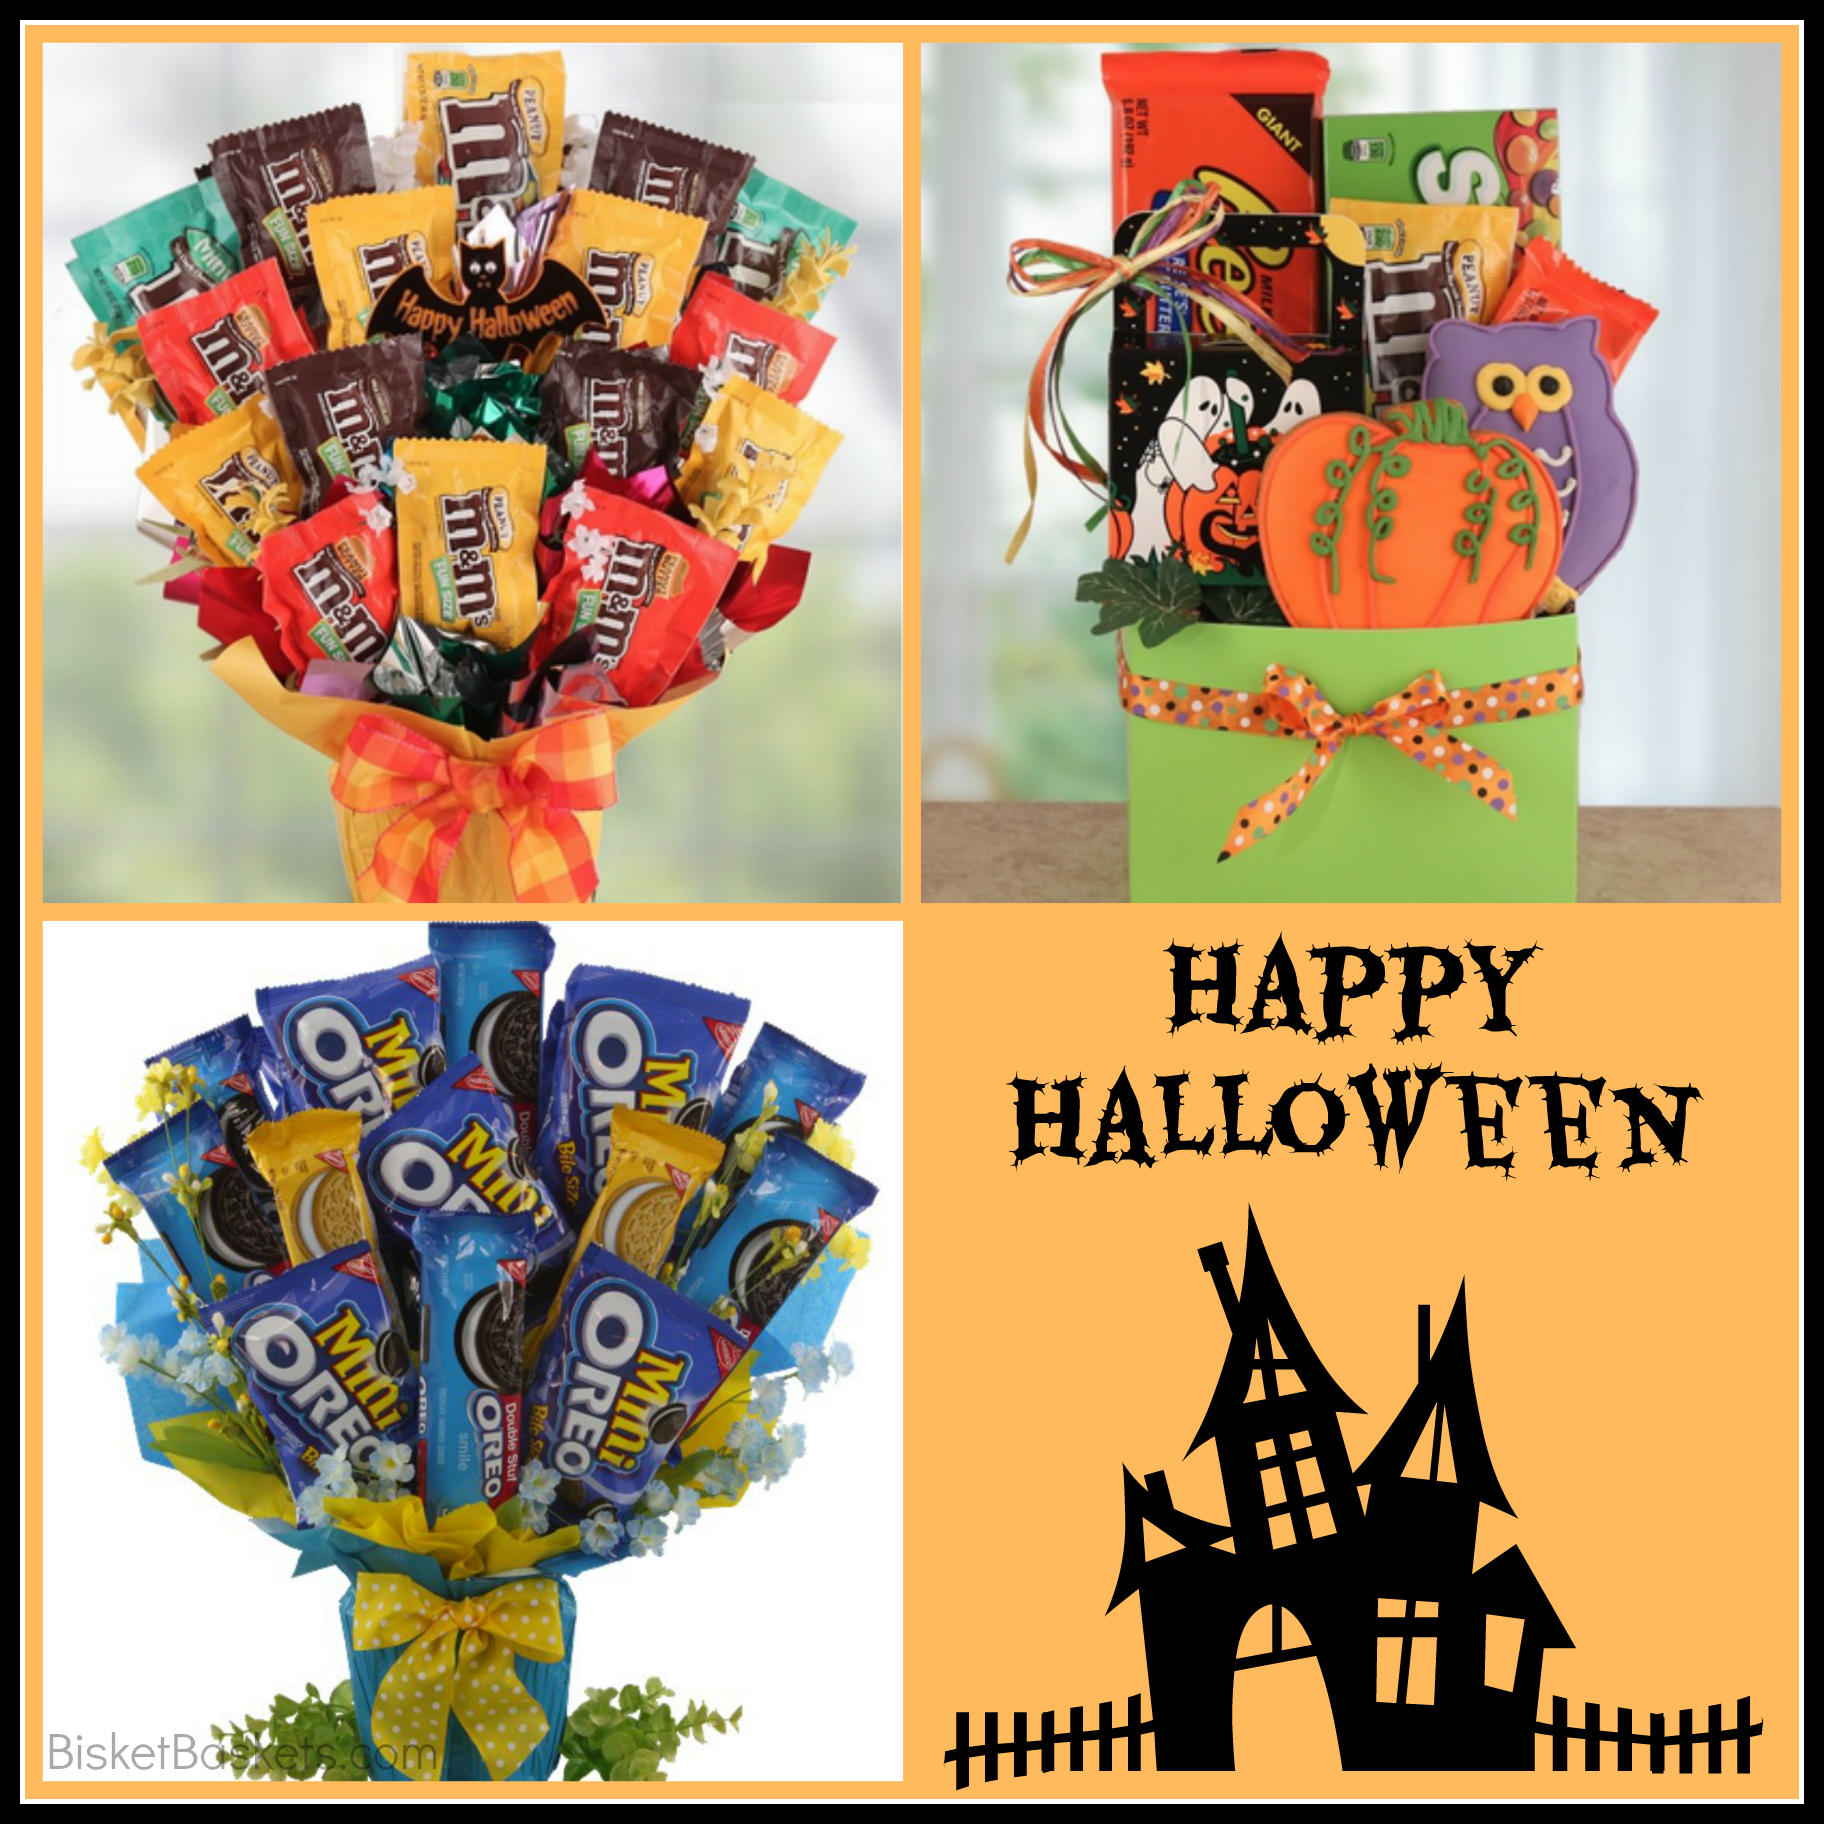 Halloween Spooky Basket.Get Spooky Treat Them With A Halloween Gift Basket